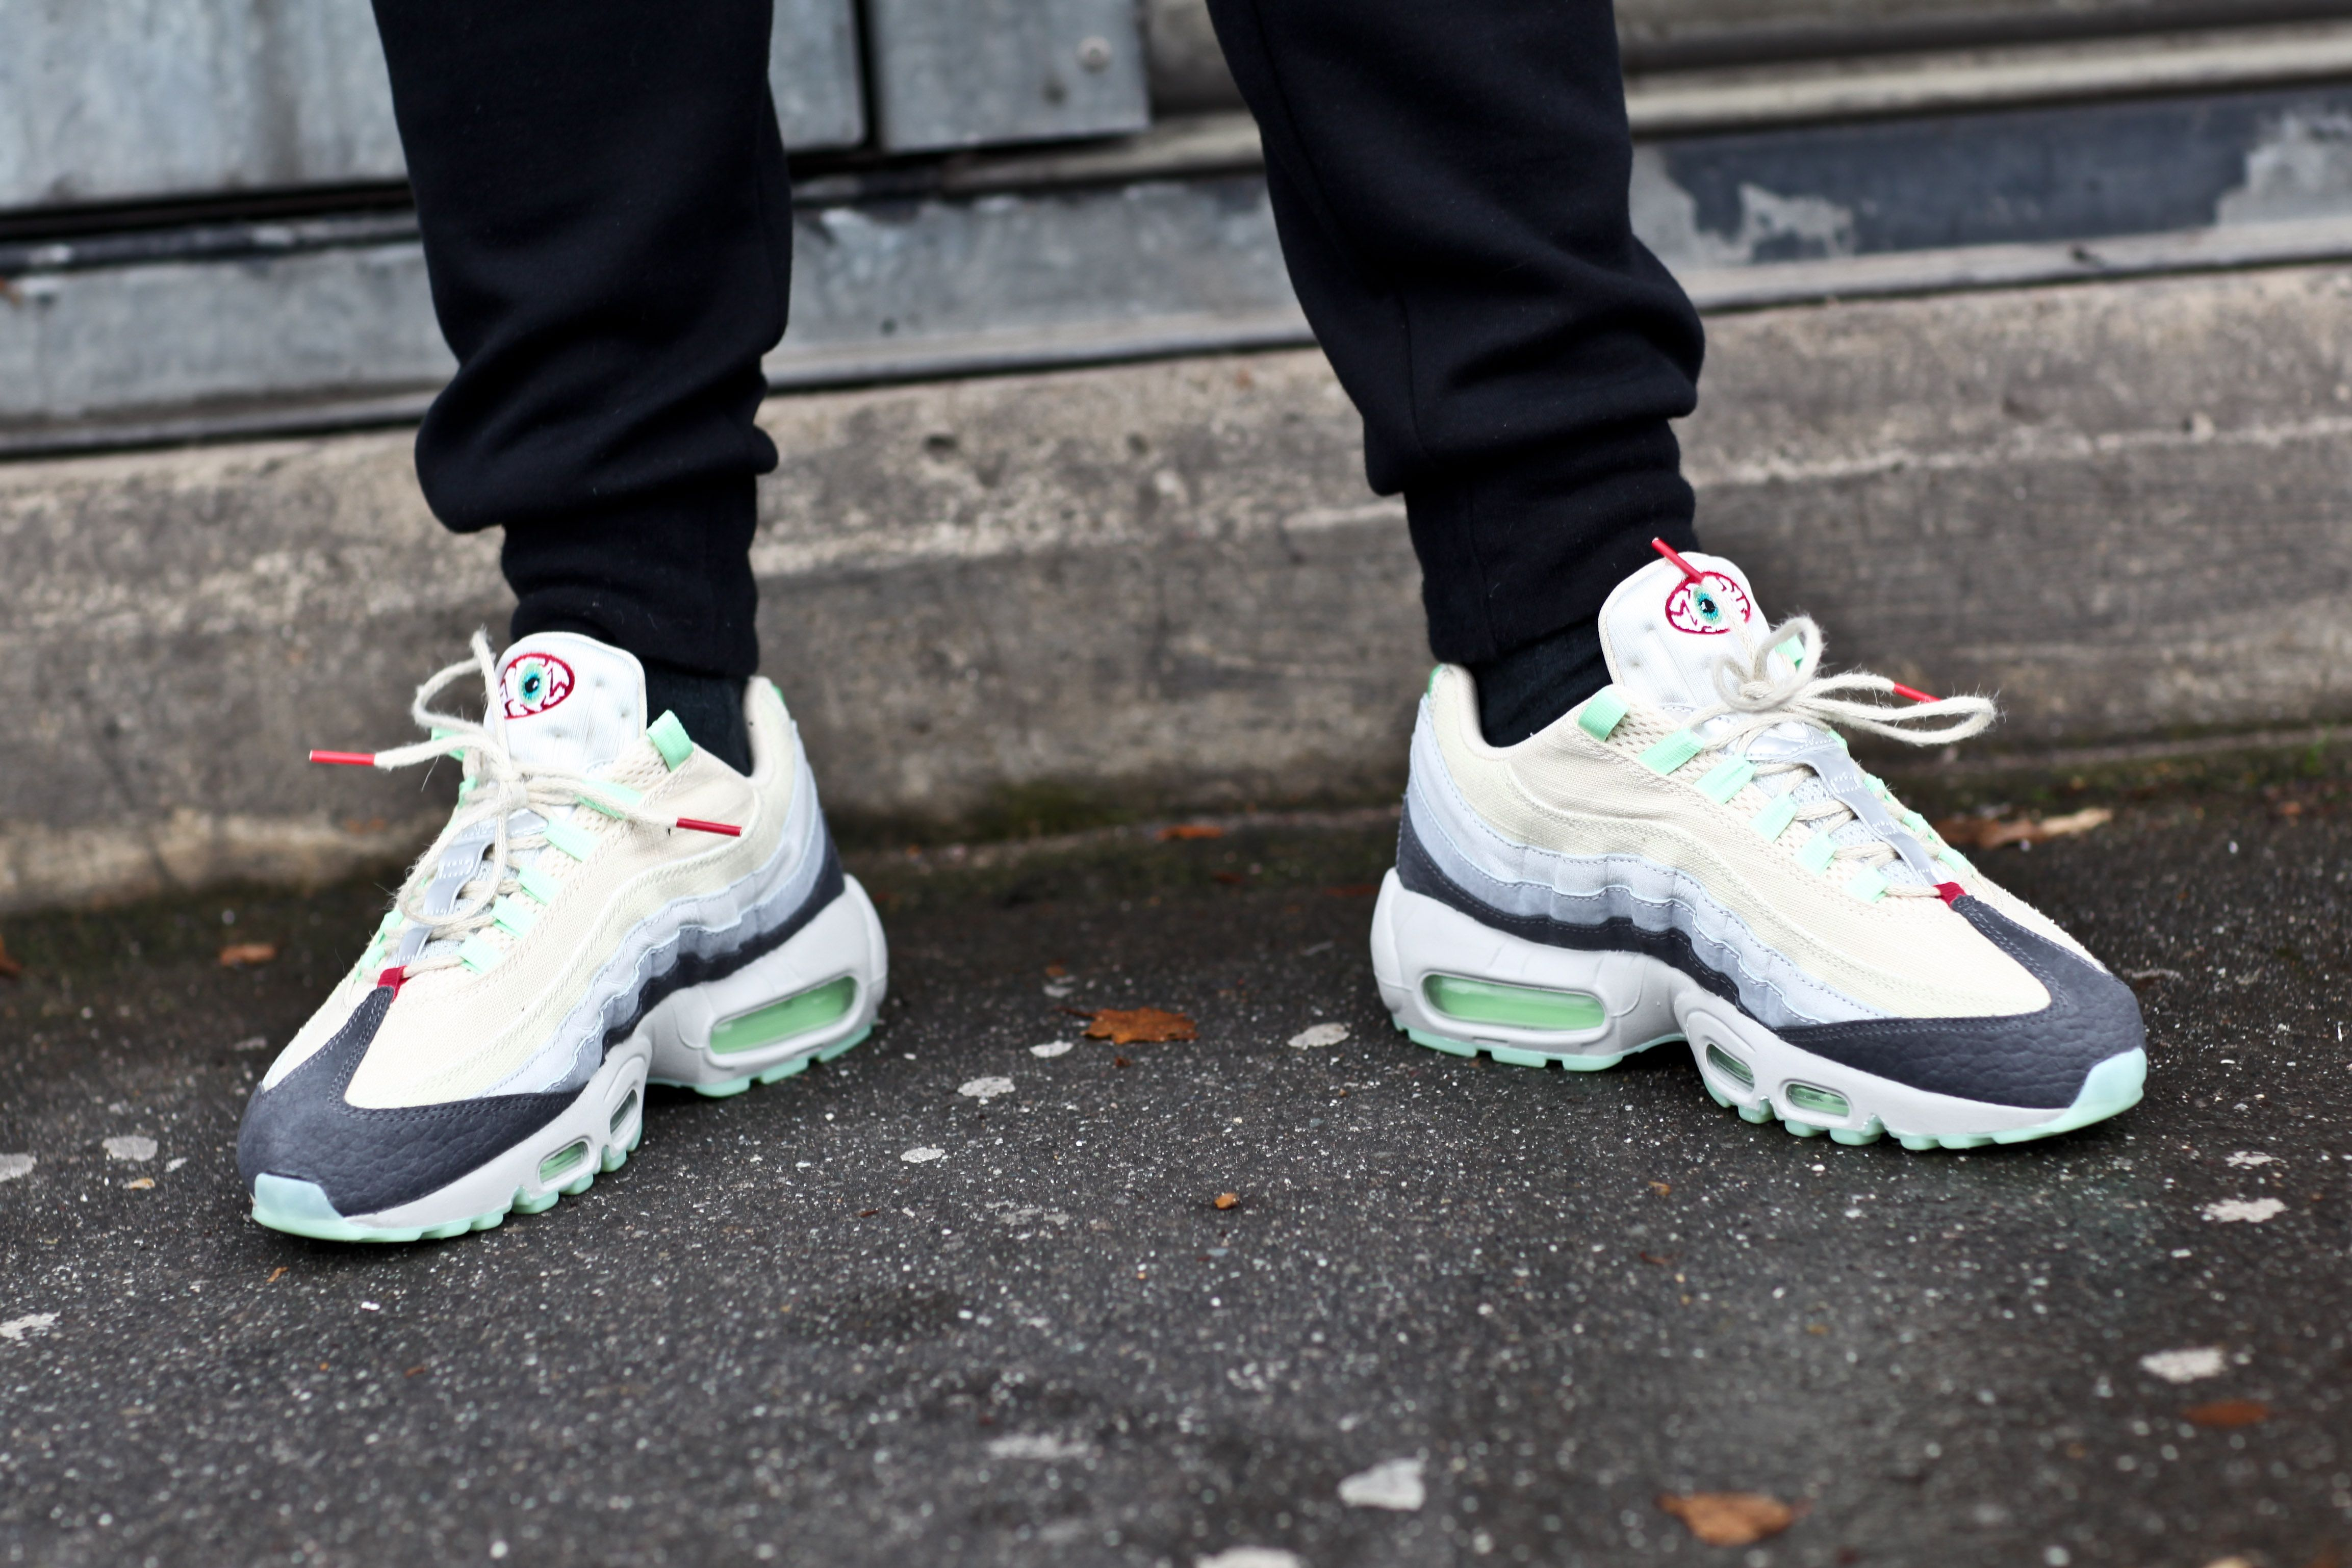 new arrival 02c7a 5cdd8 Nike Air Max 95 Halloween QS On Foot - Google zoeken